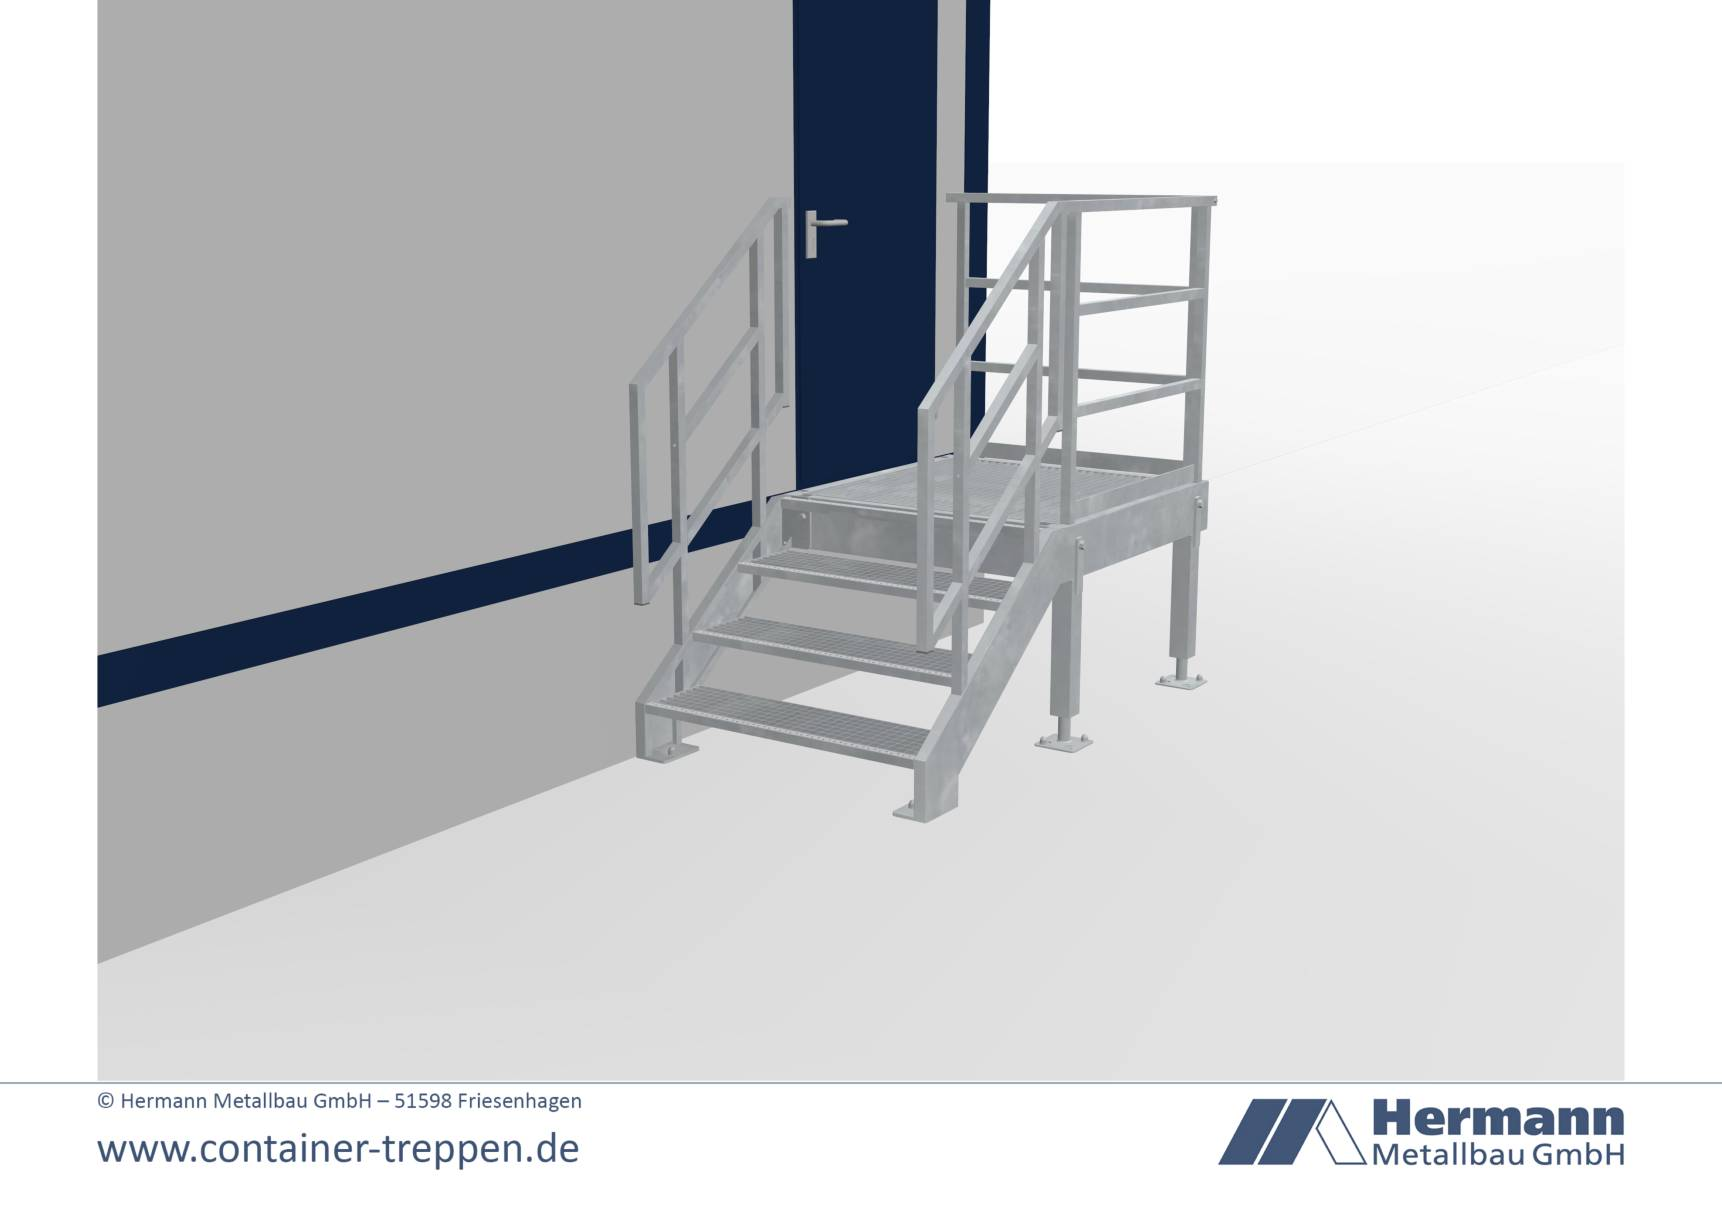 containertreppe 1G 1